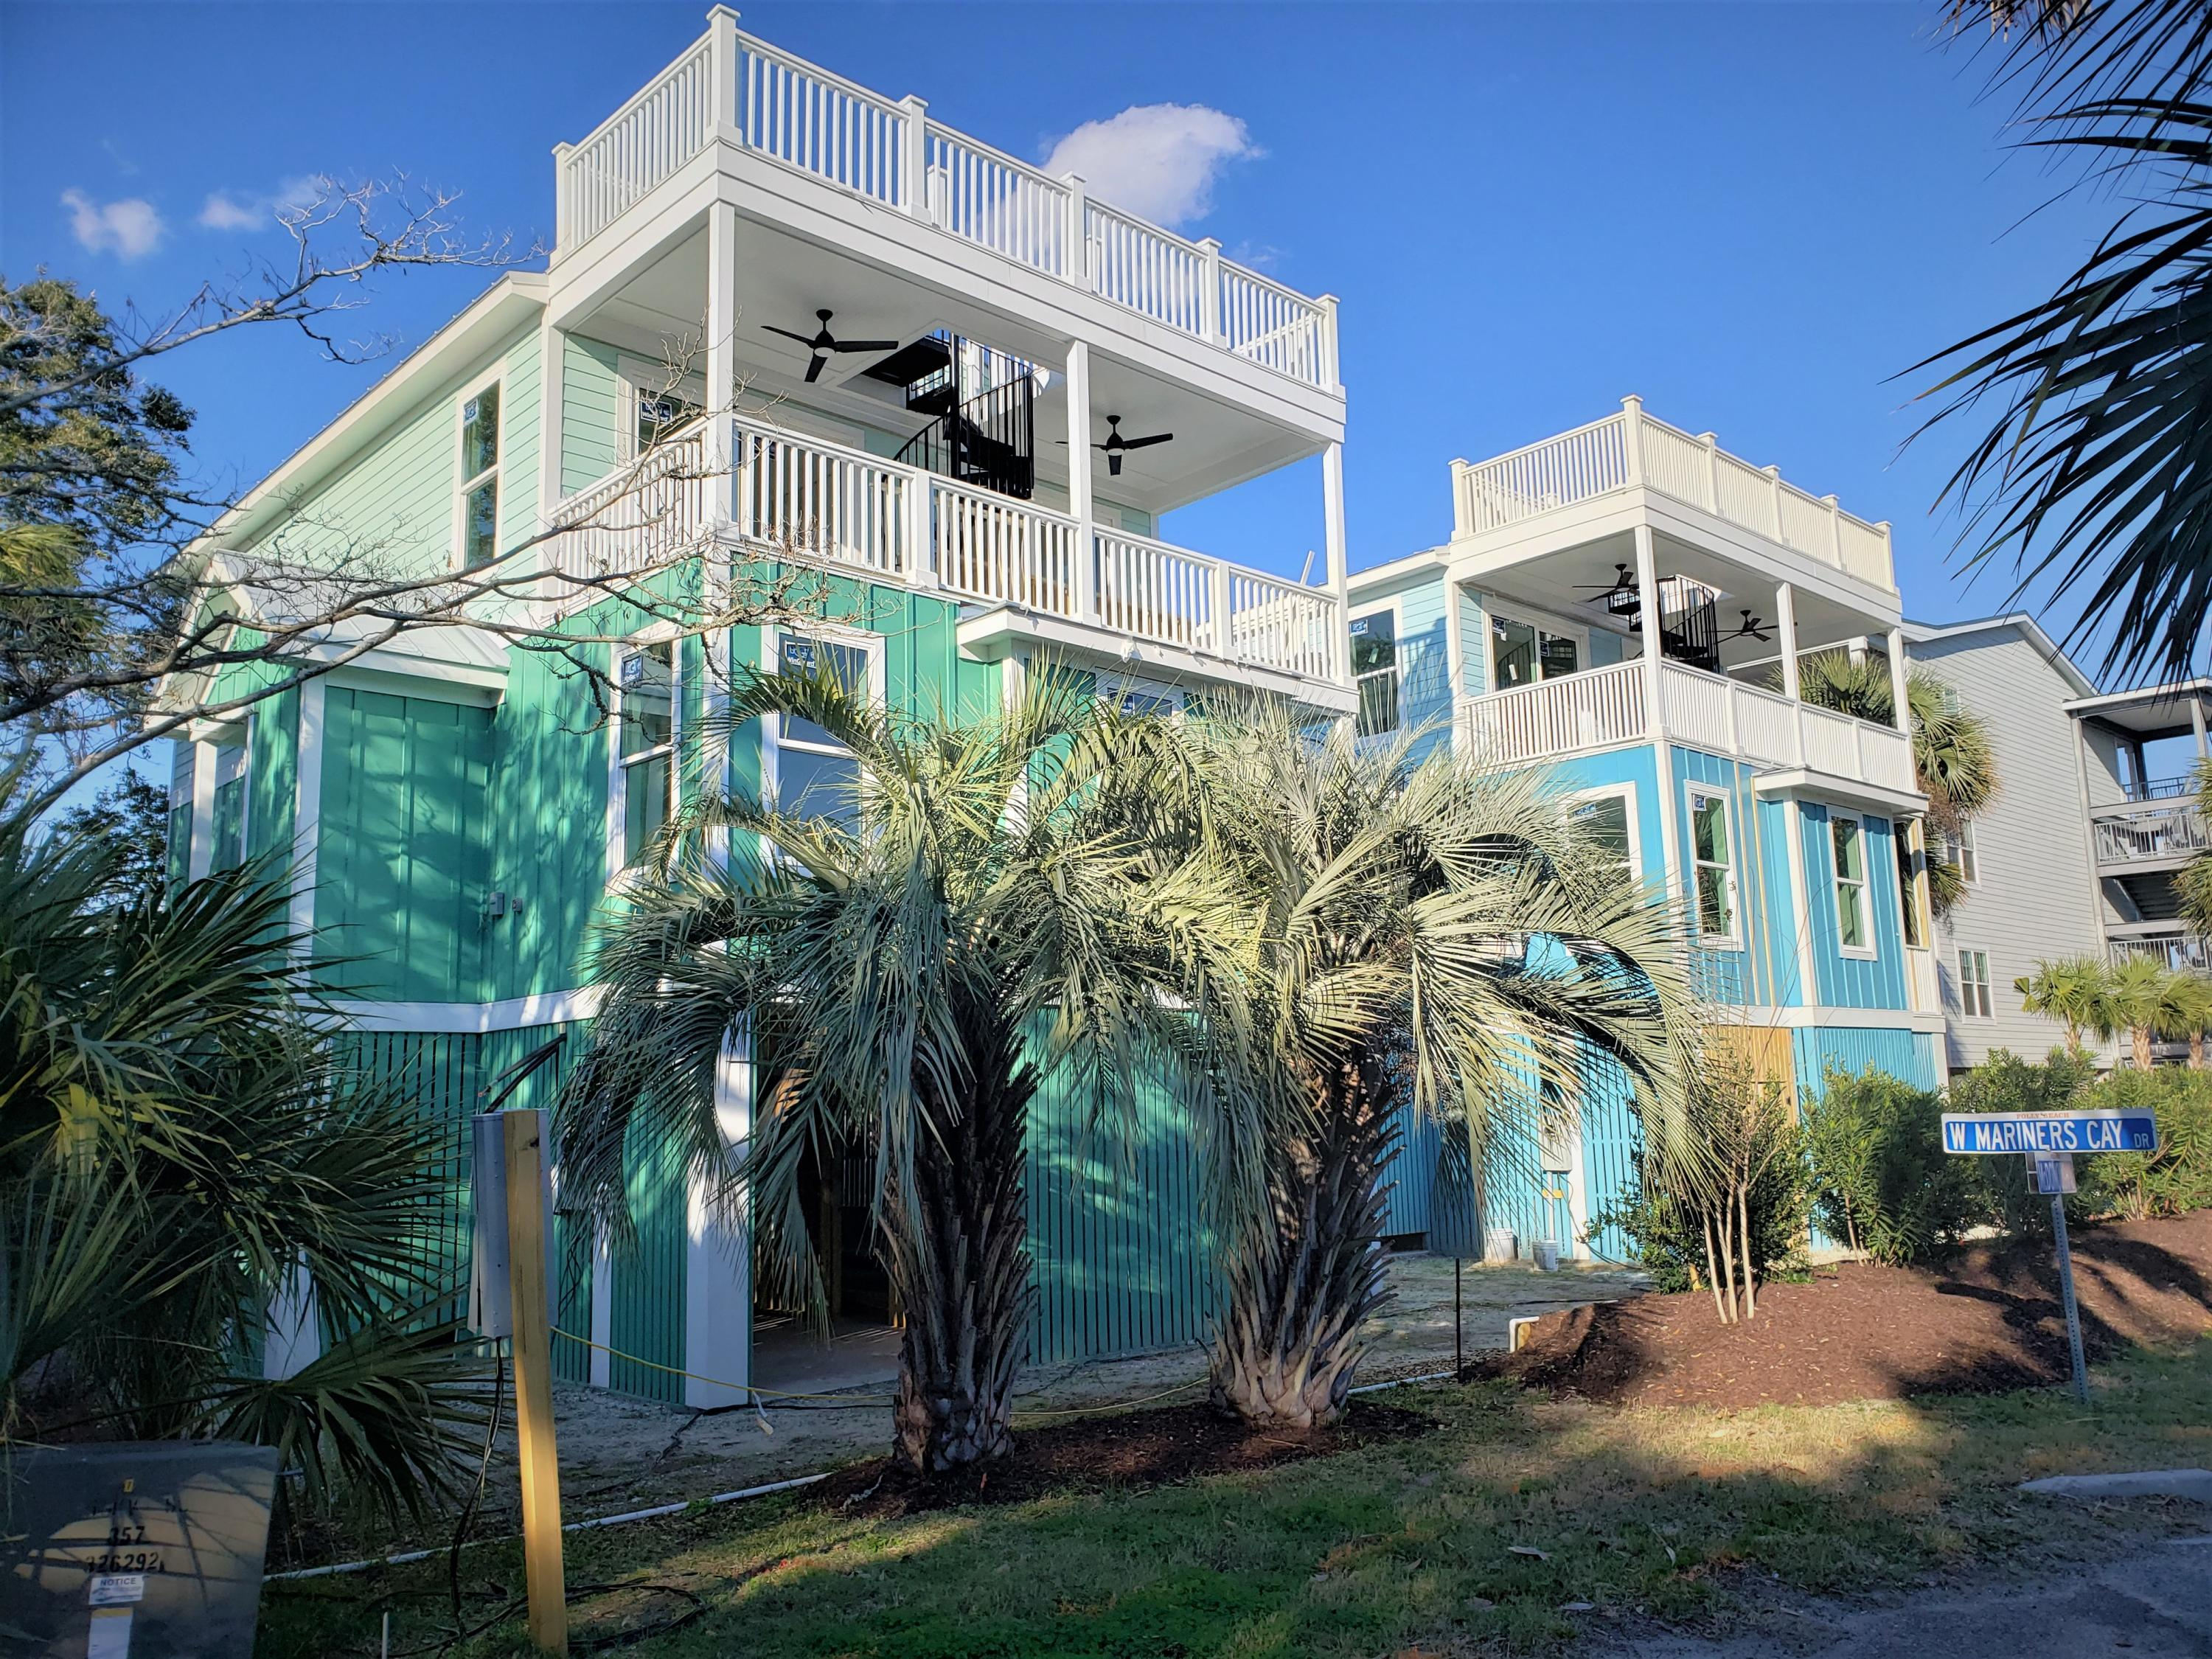 Mariners Cay Homes For Sale - 16 Mariners Cay, Folly Beach, SC - 28